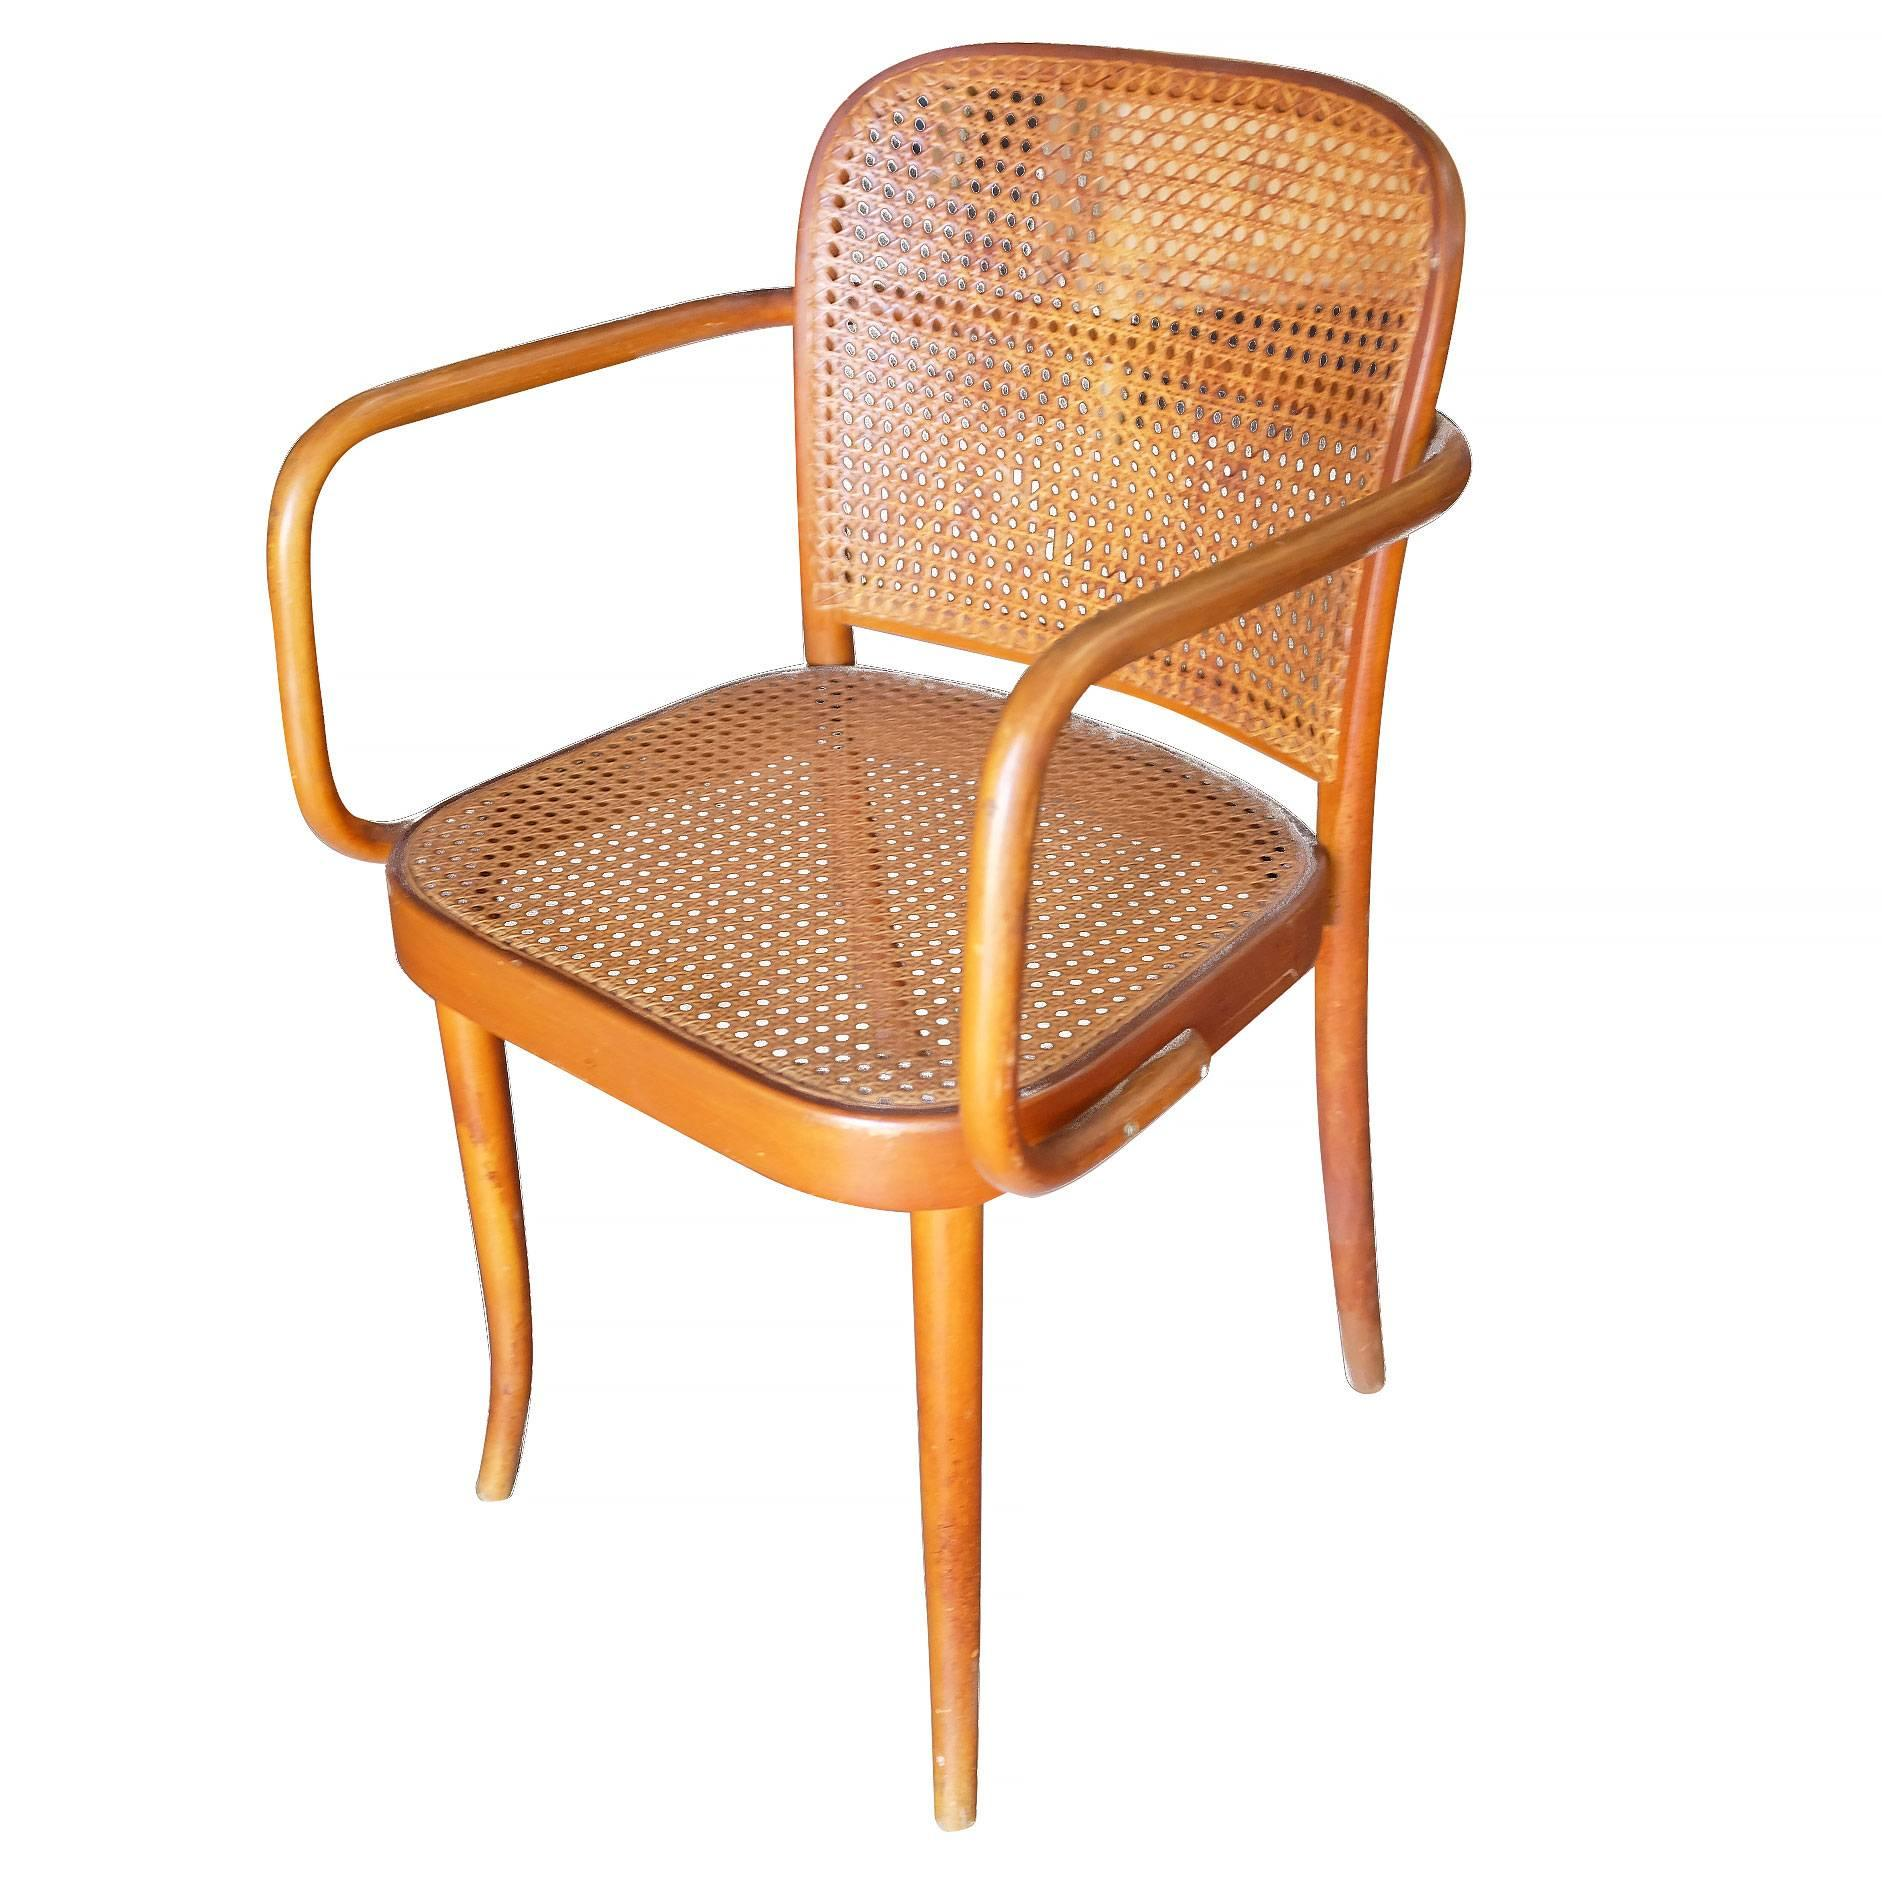 bentwood cane seat chairs fisher price high chair cover josef hoffmann no 811 by thonet set of four for number with bent beech wood frame